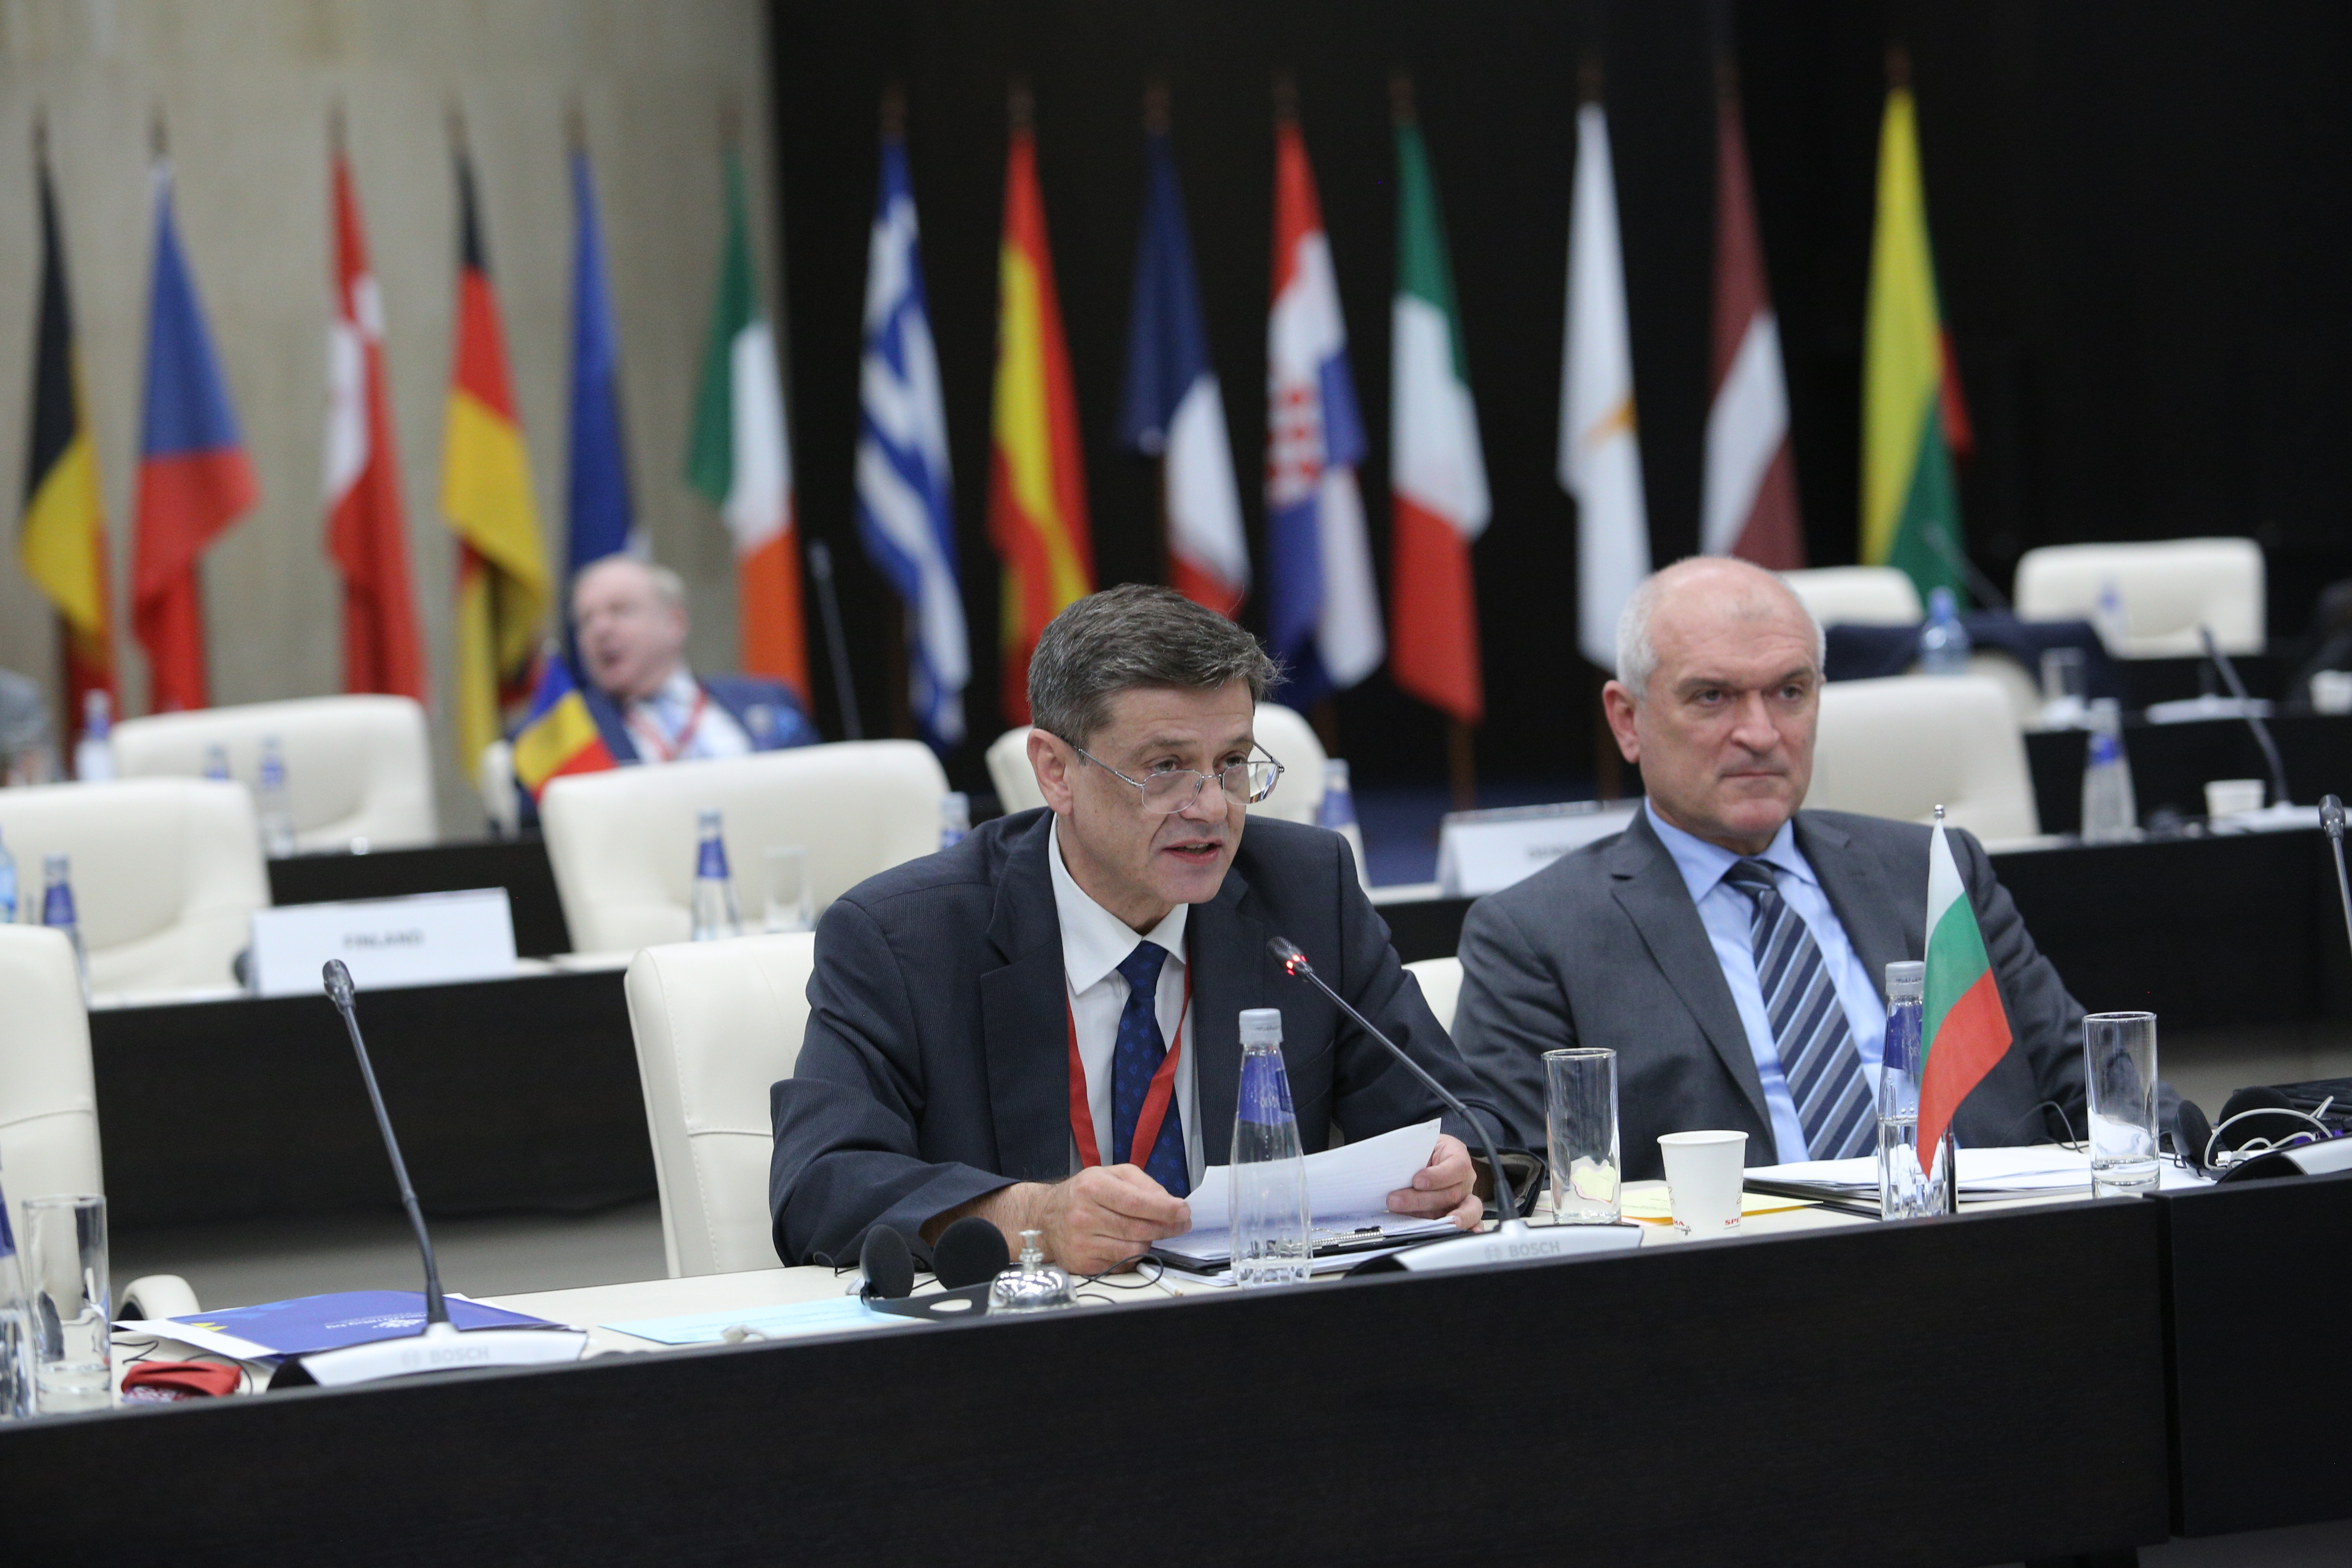 Inter-Parliamentary Conference CFSP/CSDP – Presentation of Conference Documents & Closing Remarks